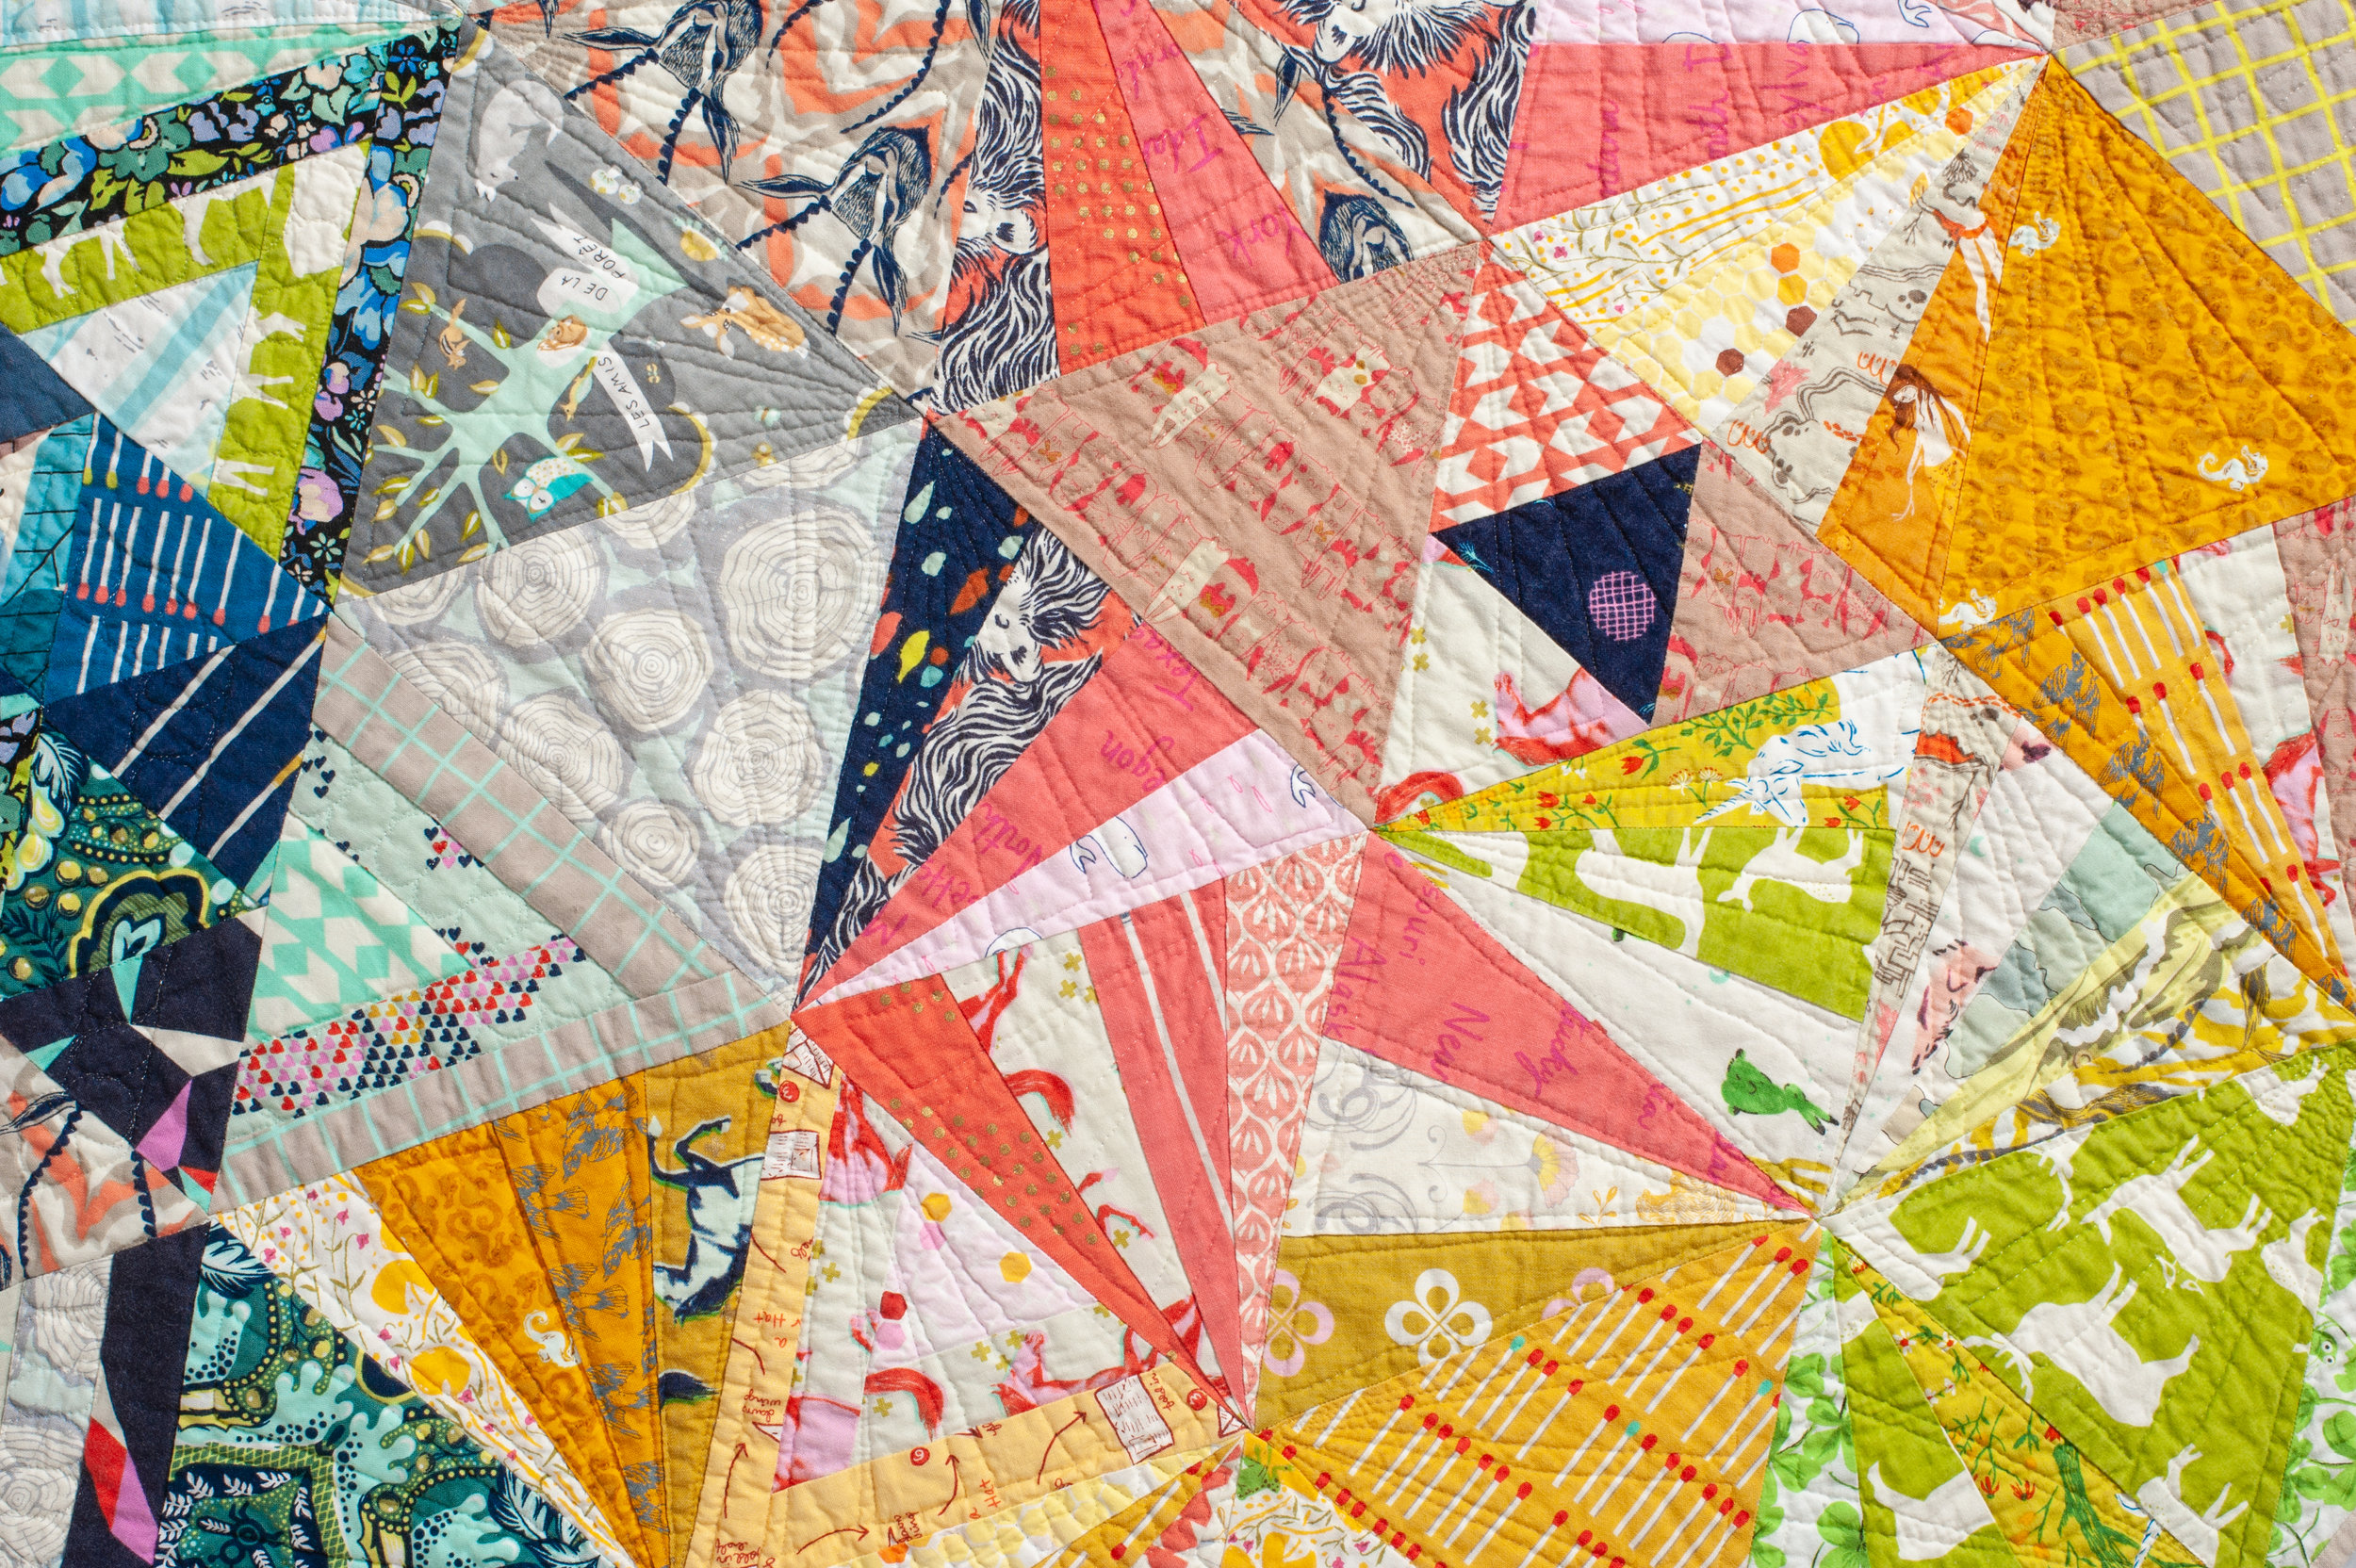 Eschbaugh_Meghan_Quilt_1 (3 of 8).jpg